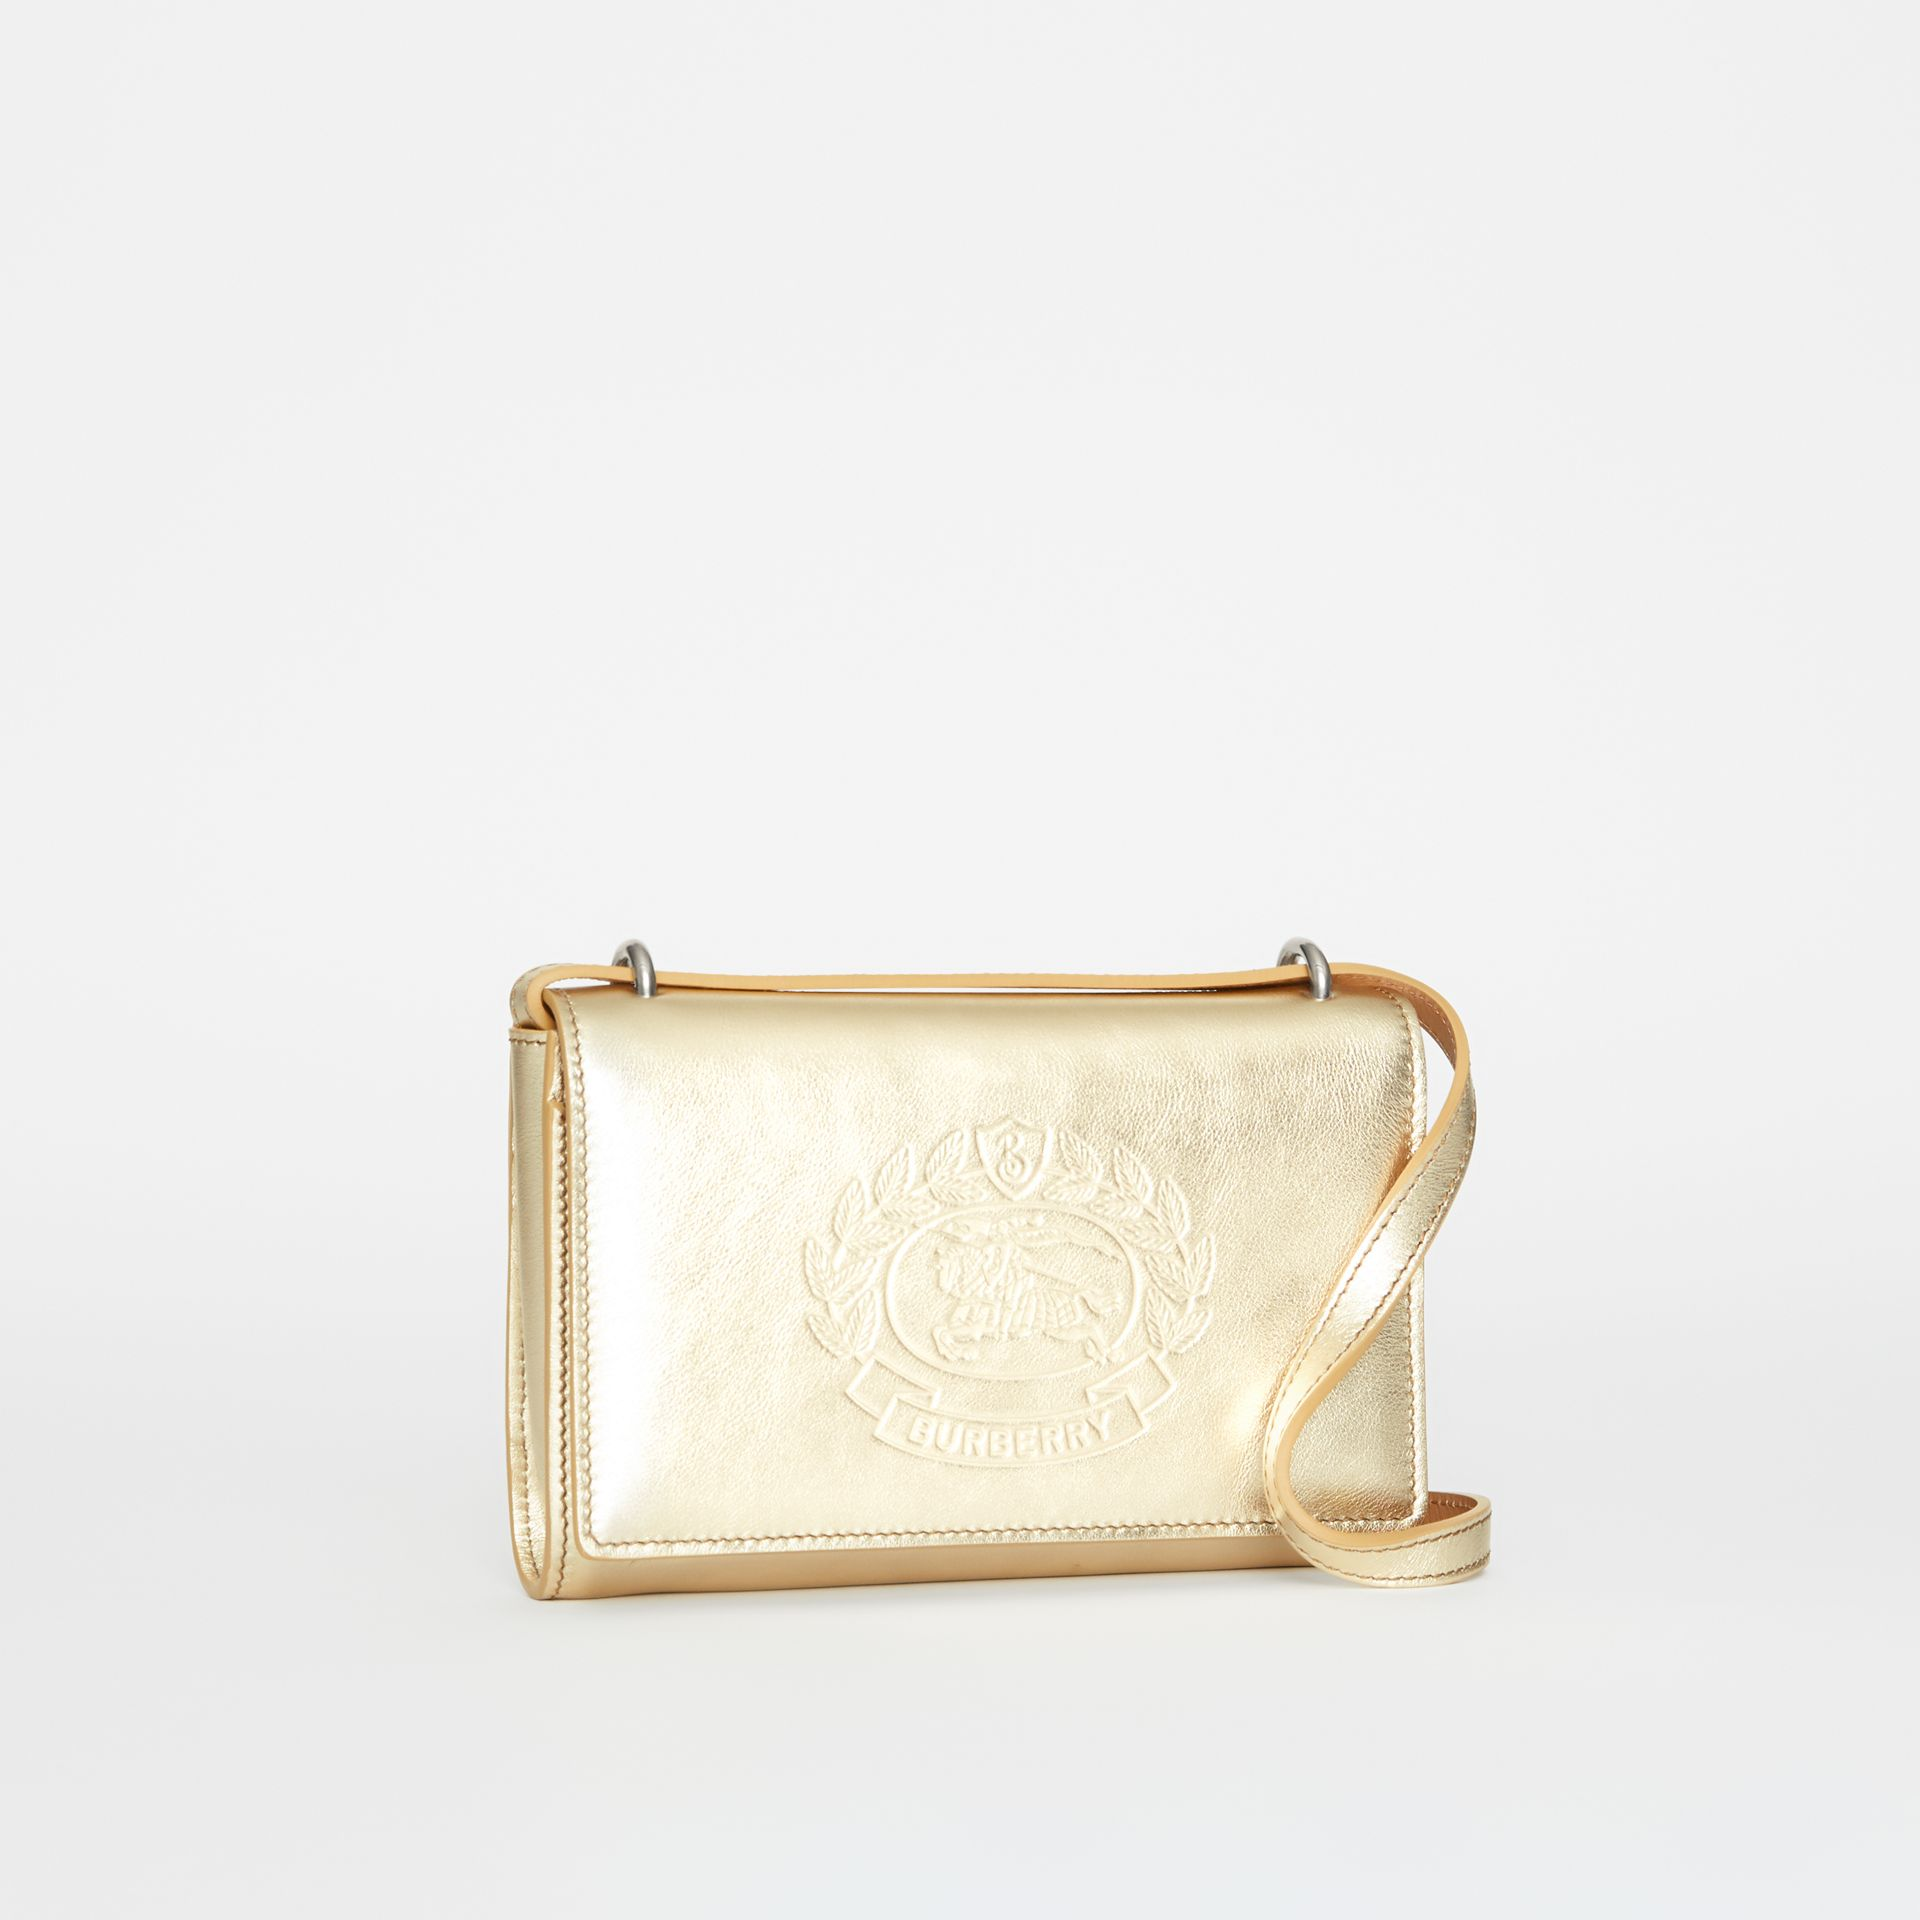 Embossed Crest Metallic Leather Wallet with Detachable Strap in Gold - Women | Burberry United States - gallery image 4